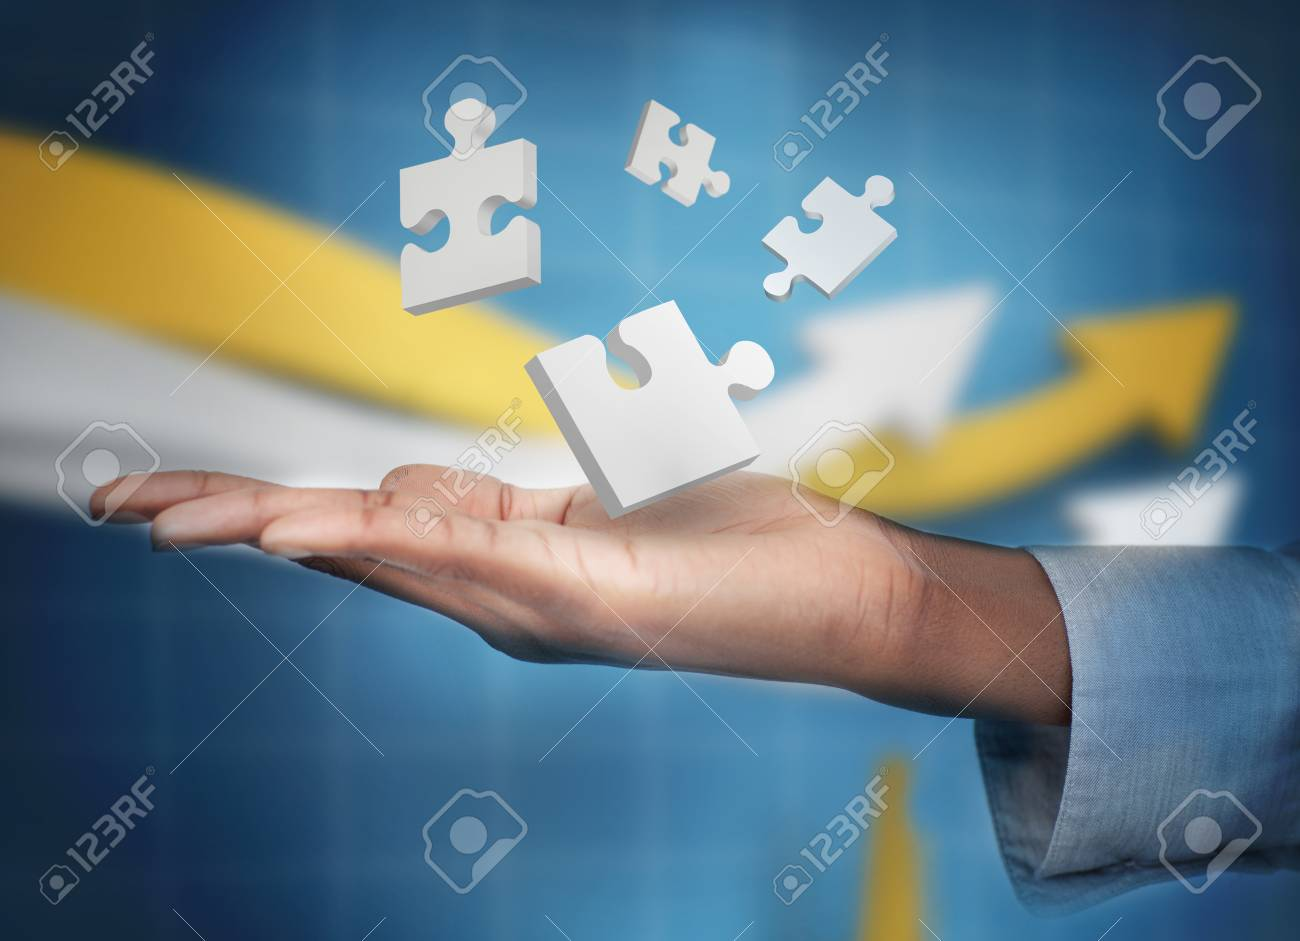 Hand with digital white puzzles levitating against a digital background Stock Photo - 18132196